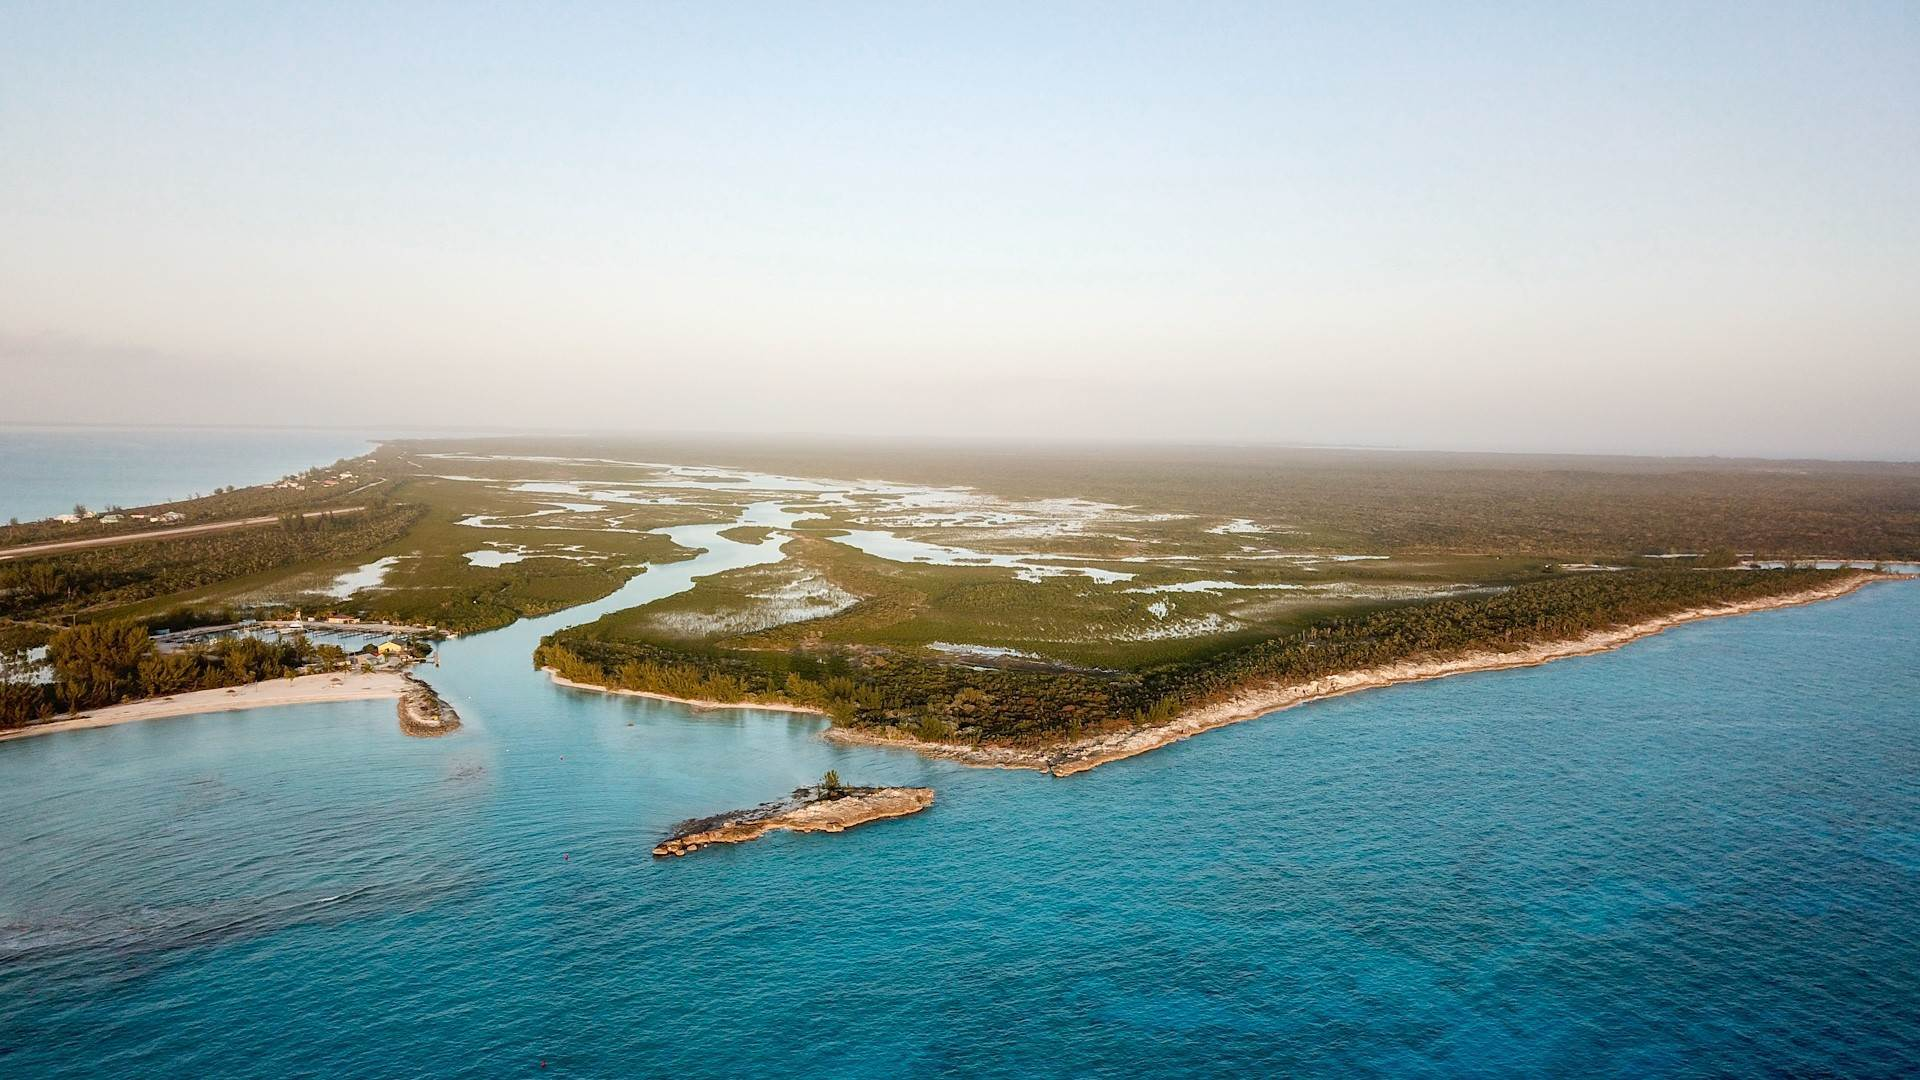 Private Islands por un Venta en Hawks Nest Cay, Cat Island - MLS 43781 Hawks Nest, Cat Island, Bahamas